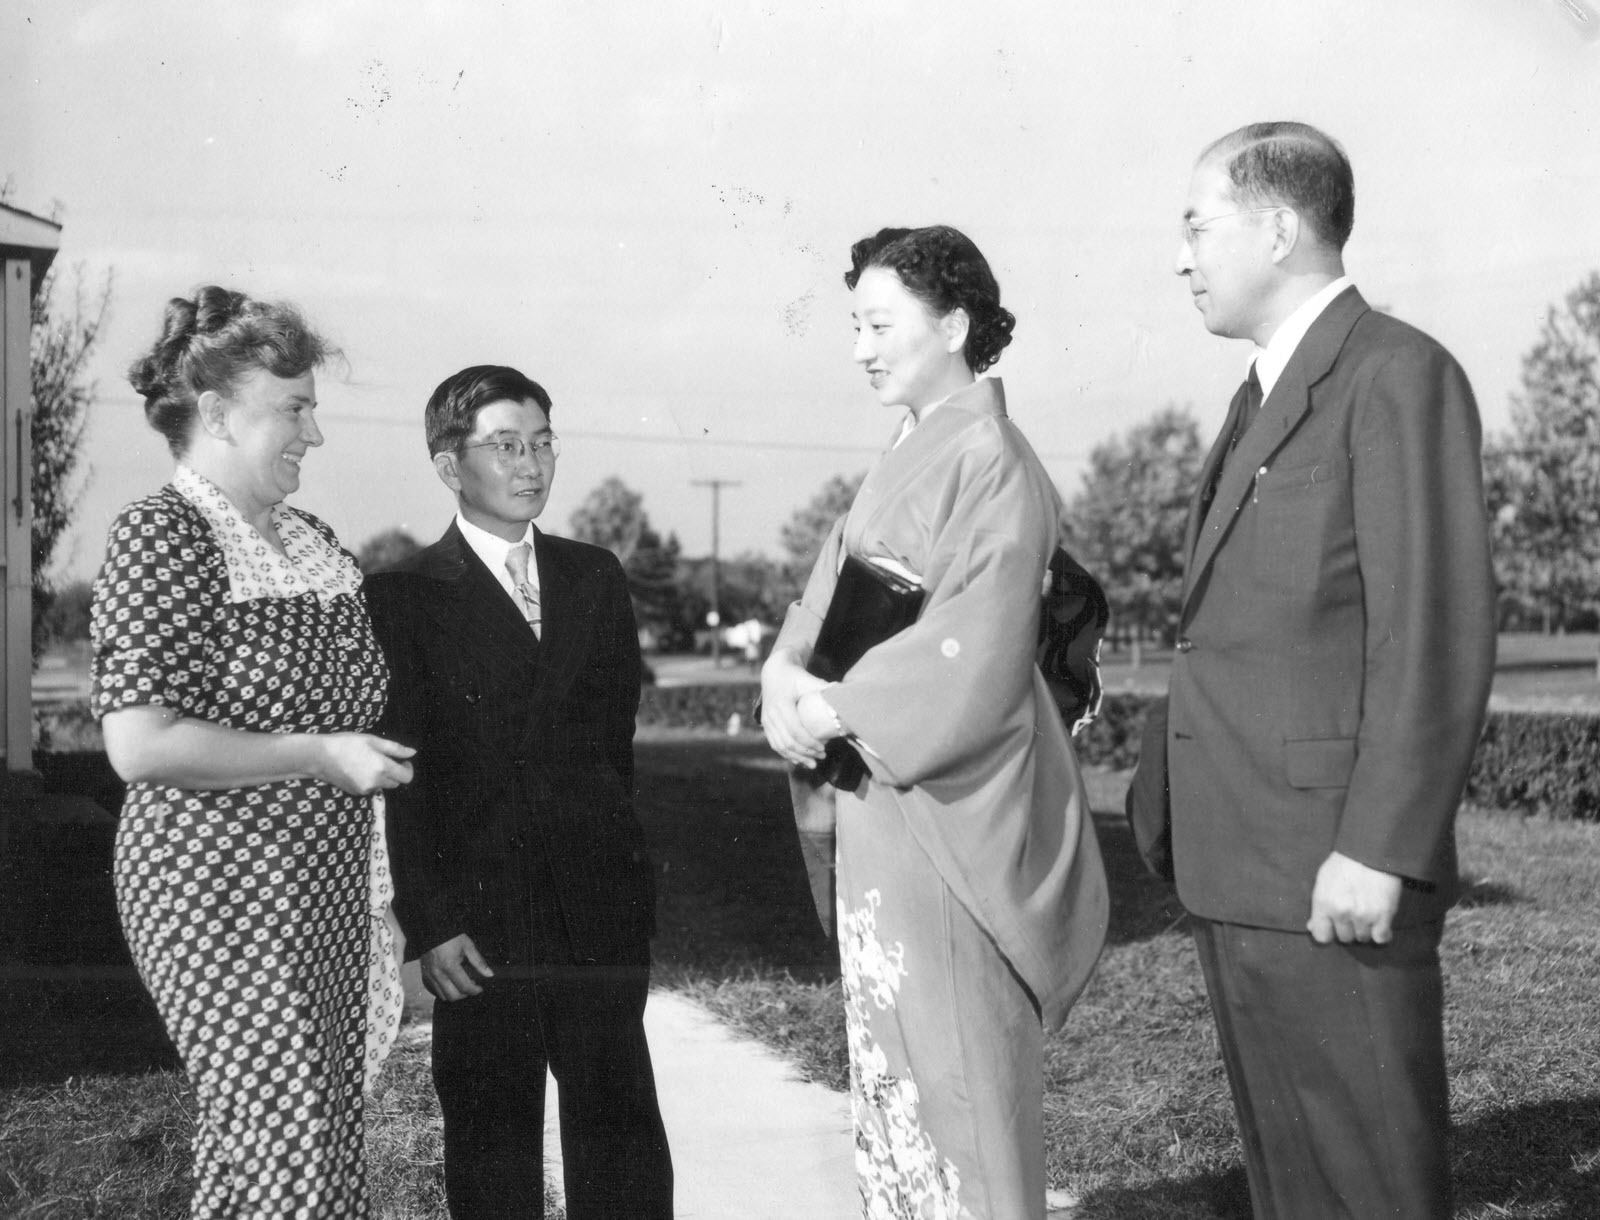 Lady Yoshiko Ohtani - Historical photo of how Gomonshu Kosho Ohtani and Lady Ohtani visited BCA Temples. Shown here is her visit to Seabrook Buddhist Temple in 1952.